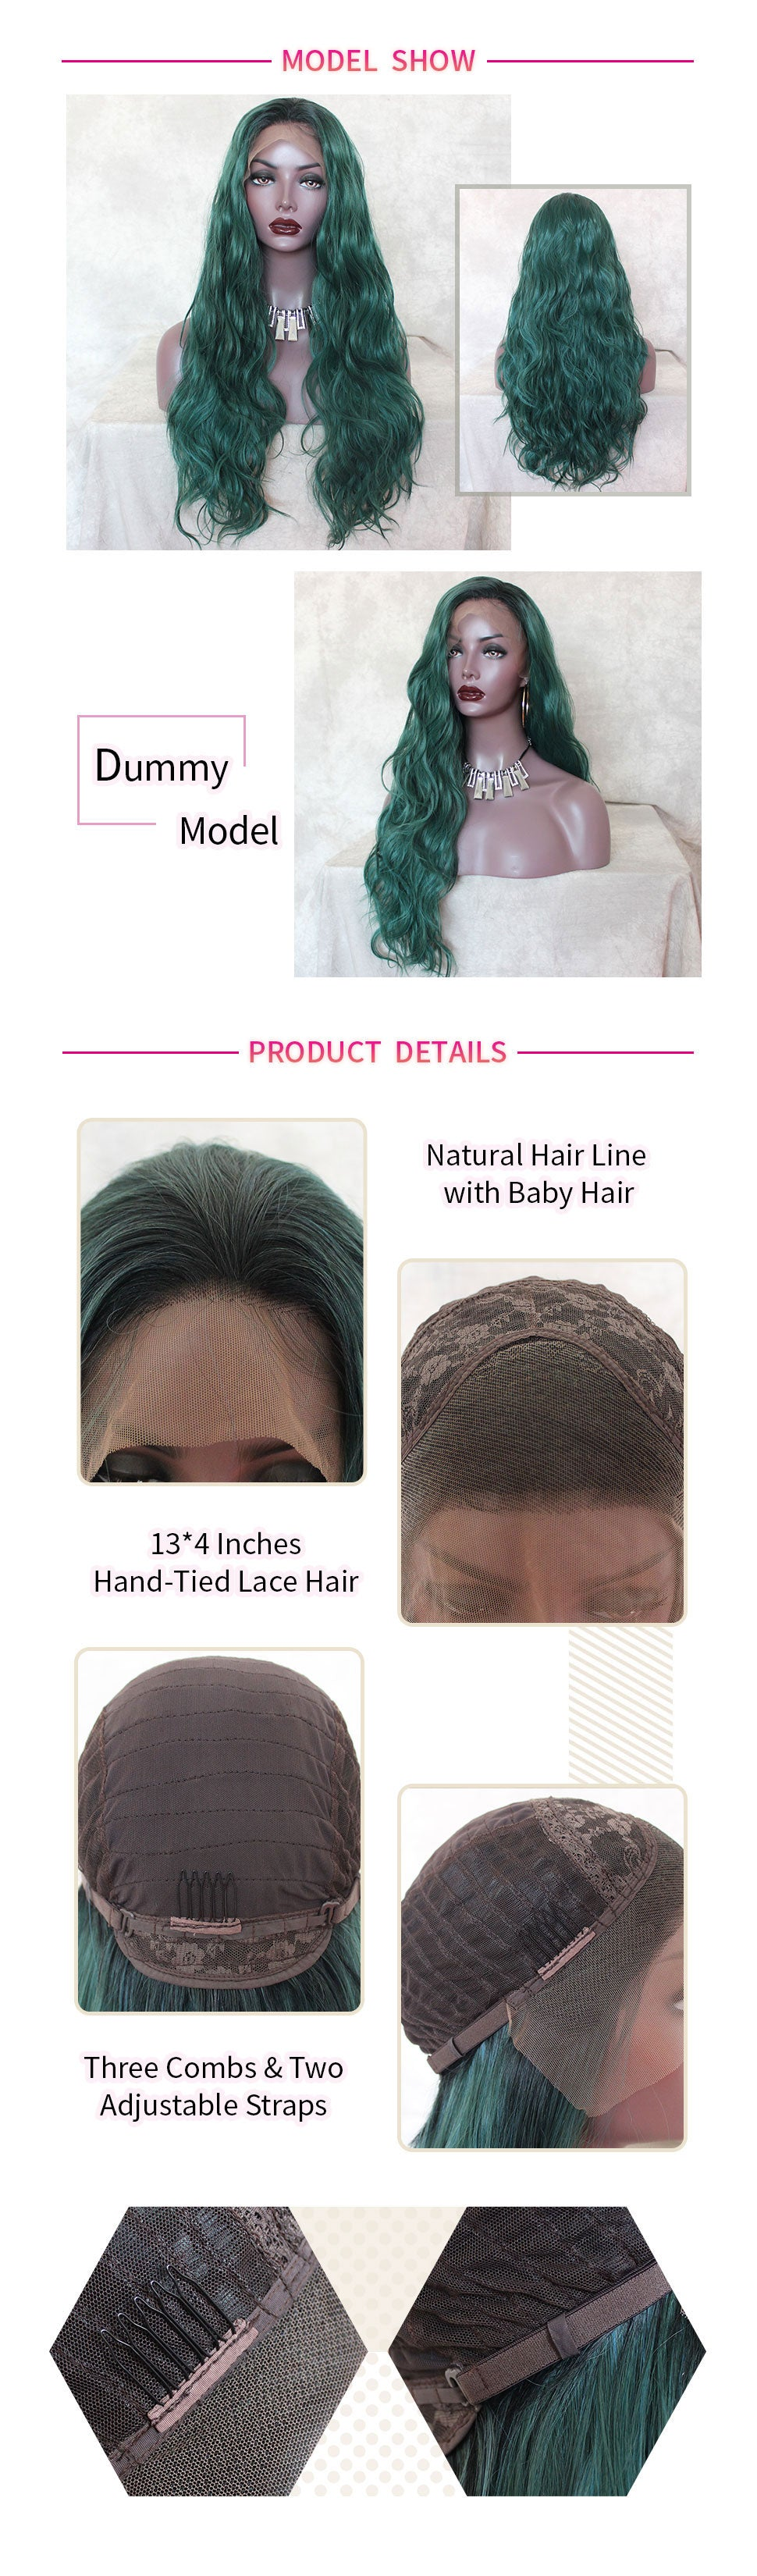 ReadyWig Green Loose Wavy Dark Roots Synthetic Lace Front Wig  24 Inches-hair details